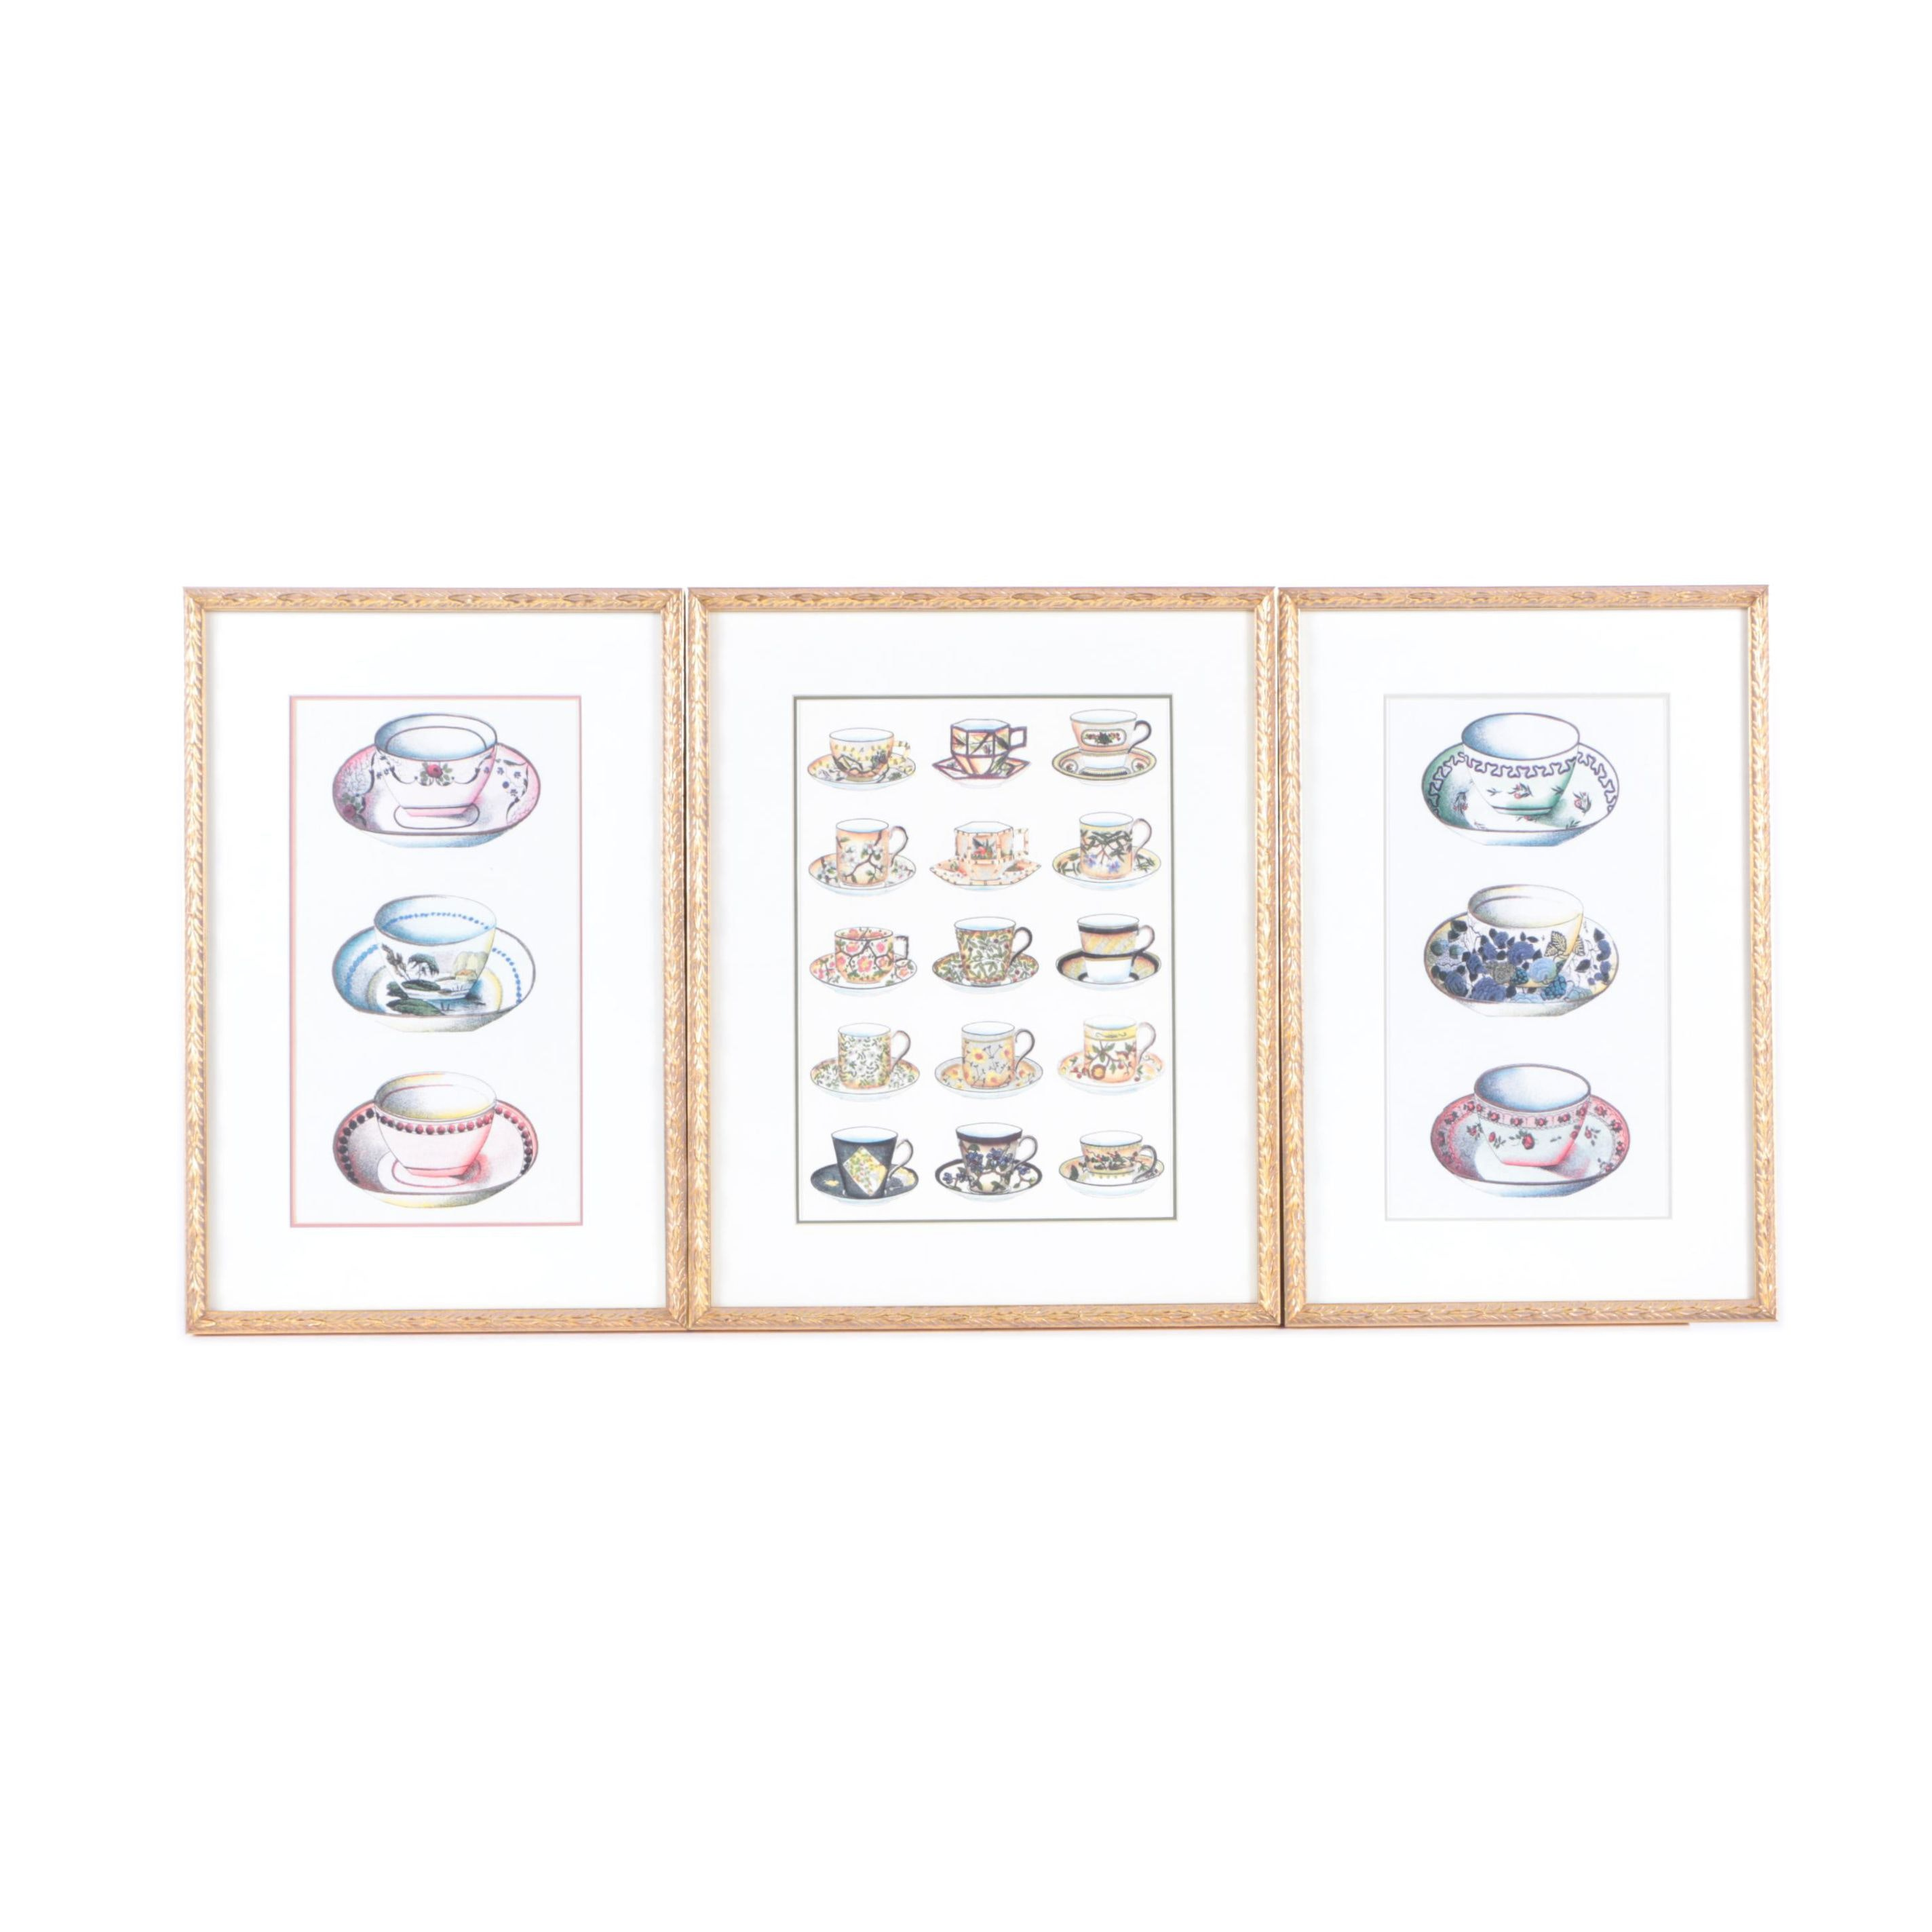 Offset Lithographs on Paper of Teacups